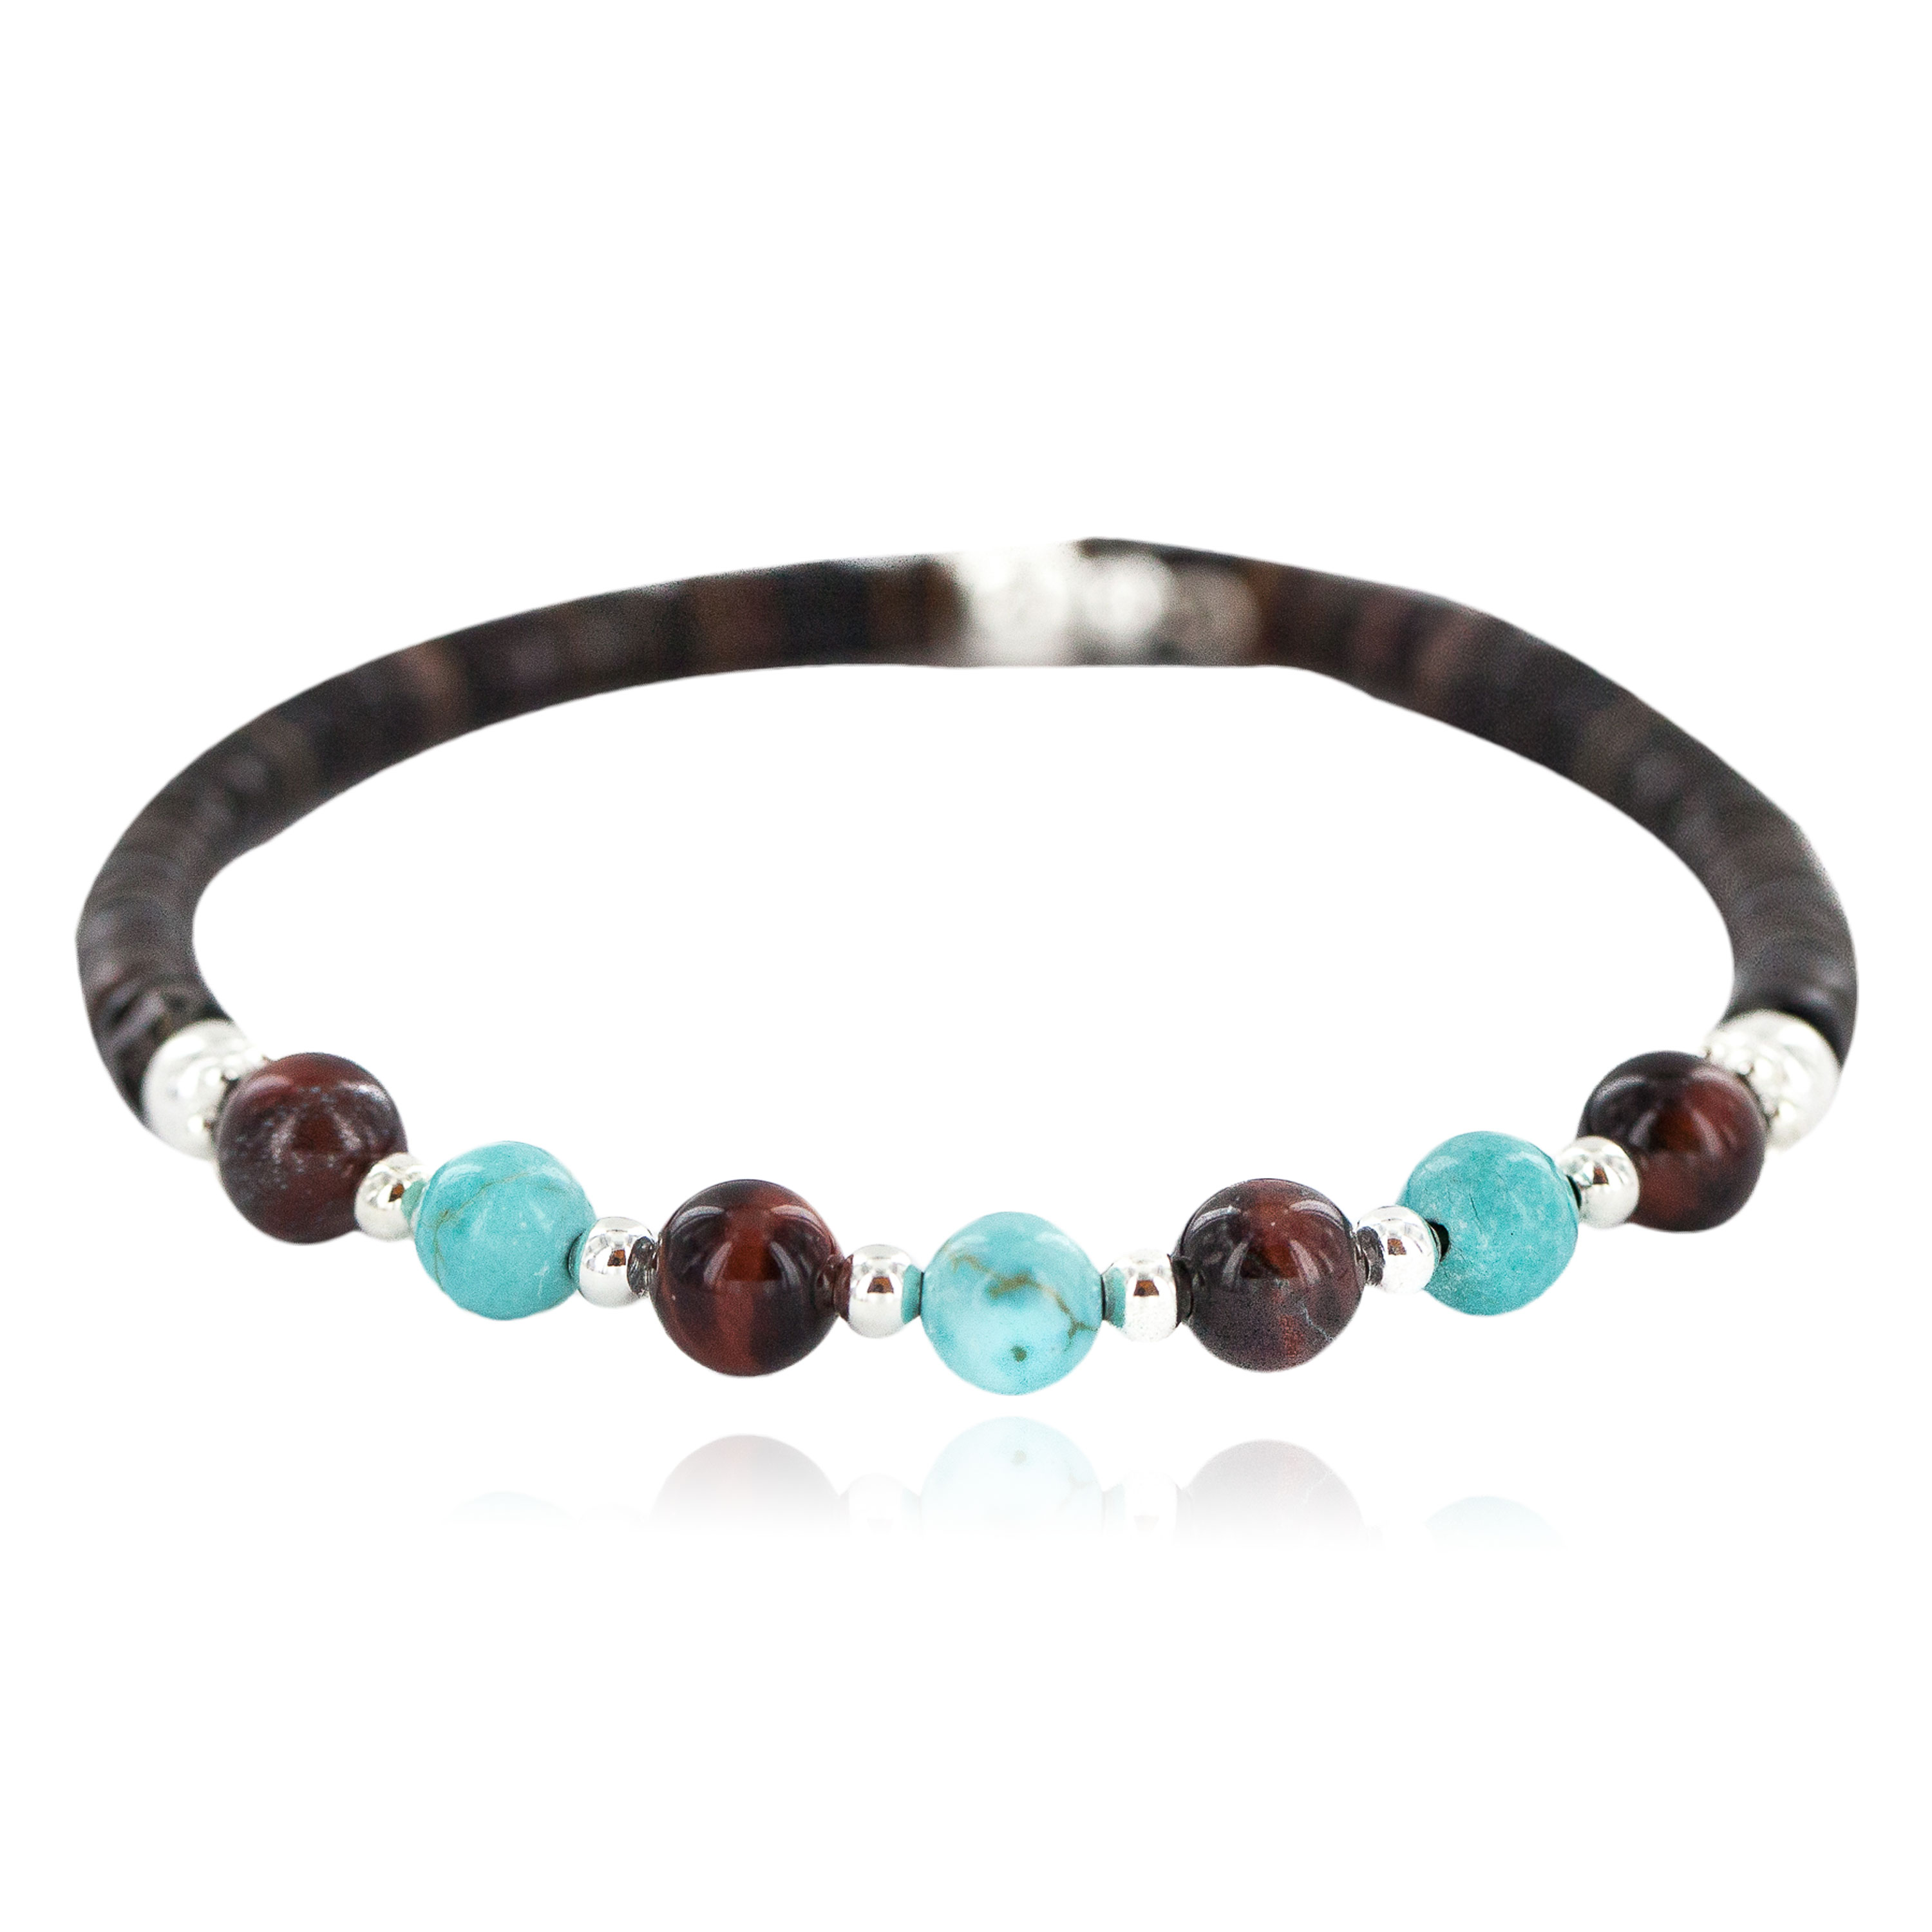 Navajo Certified Authentic Natural Tigers Eye Heishi Native American Adjustable Wrap Bracelet 13181-2 All Products NB160528000159 13181-2 (by LomaSiiva)